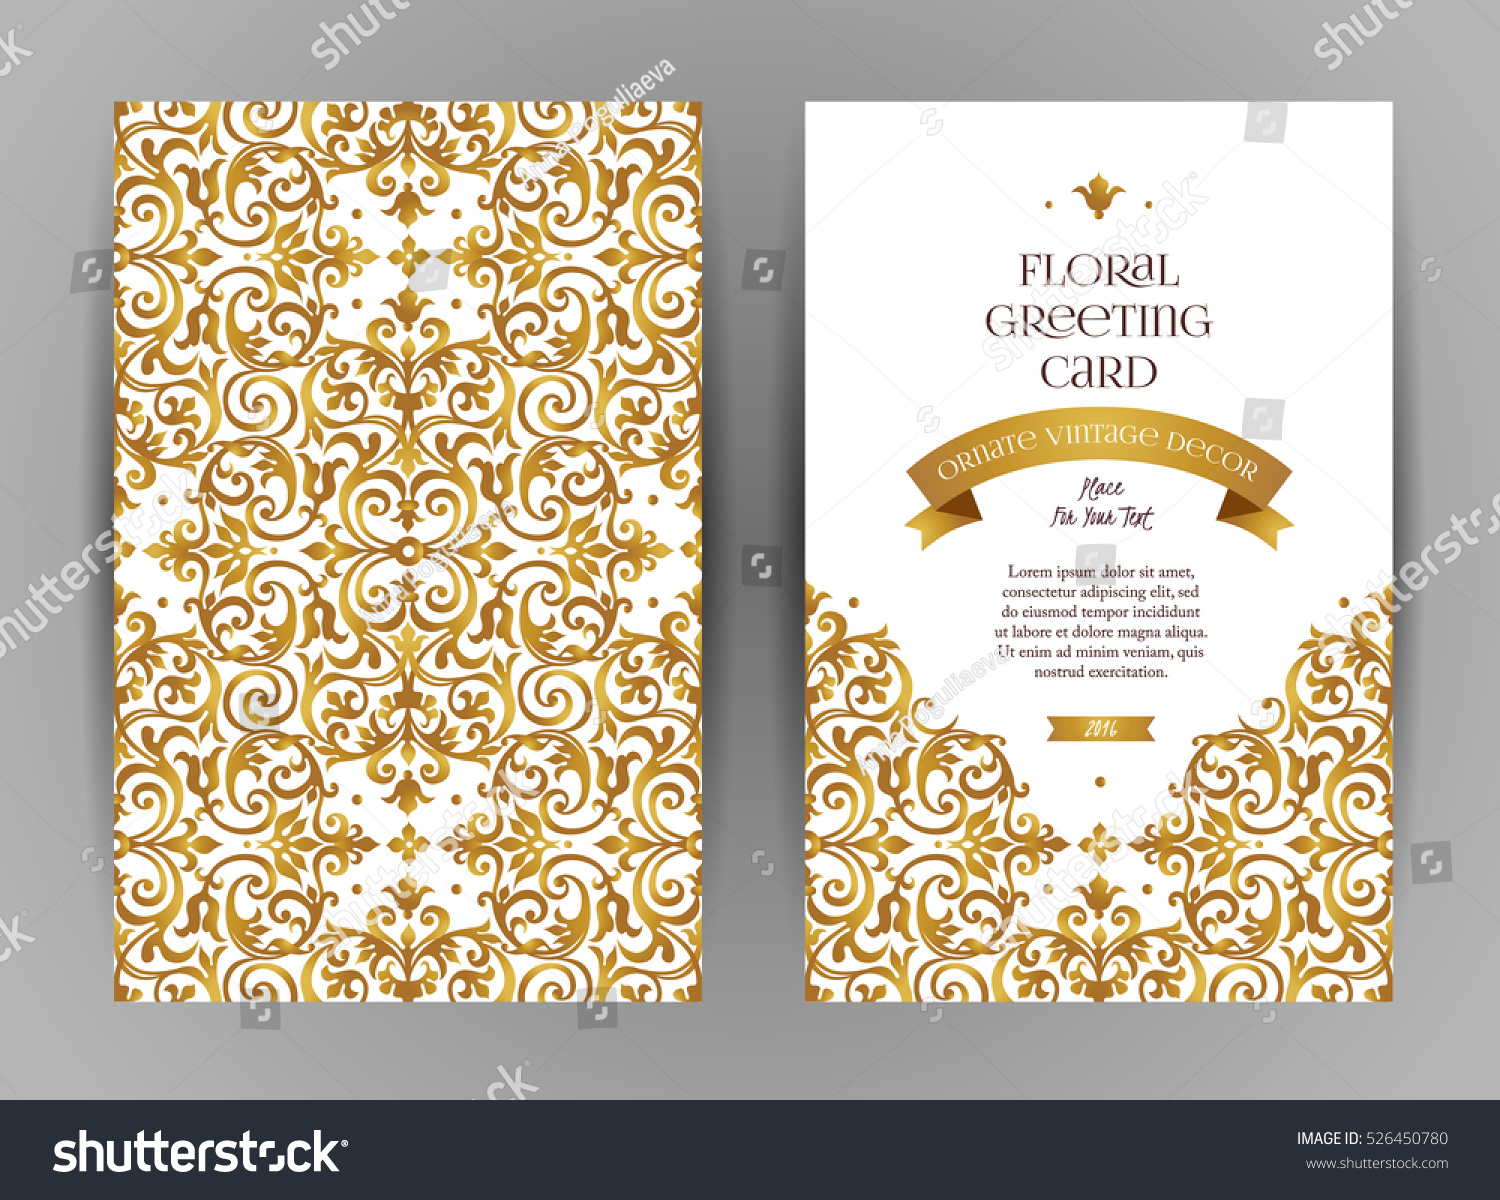 E Card Wedding Invitation: Ornate Vintage Cards Golden Floral Decor Stock Vector